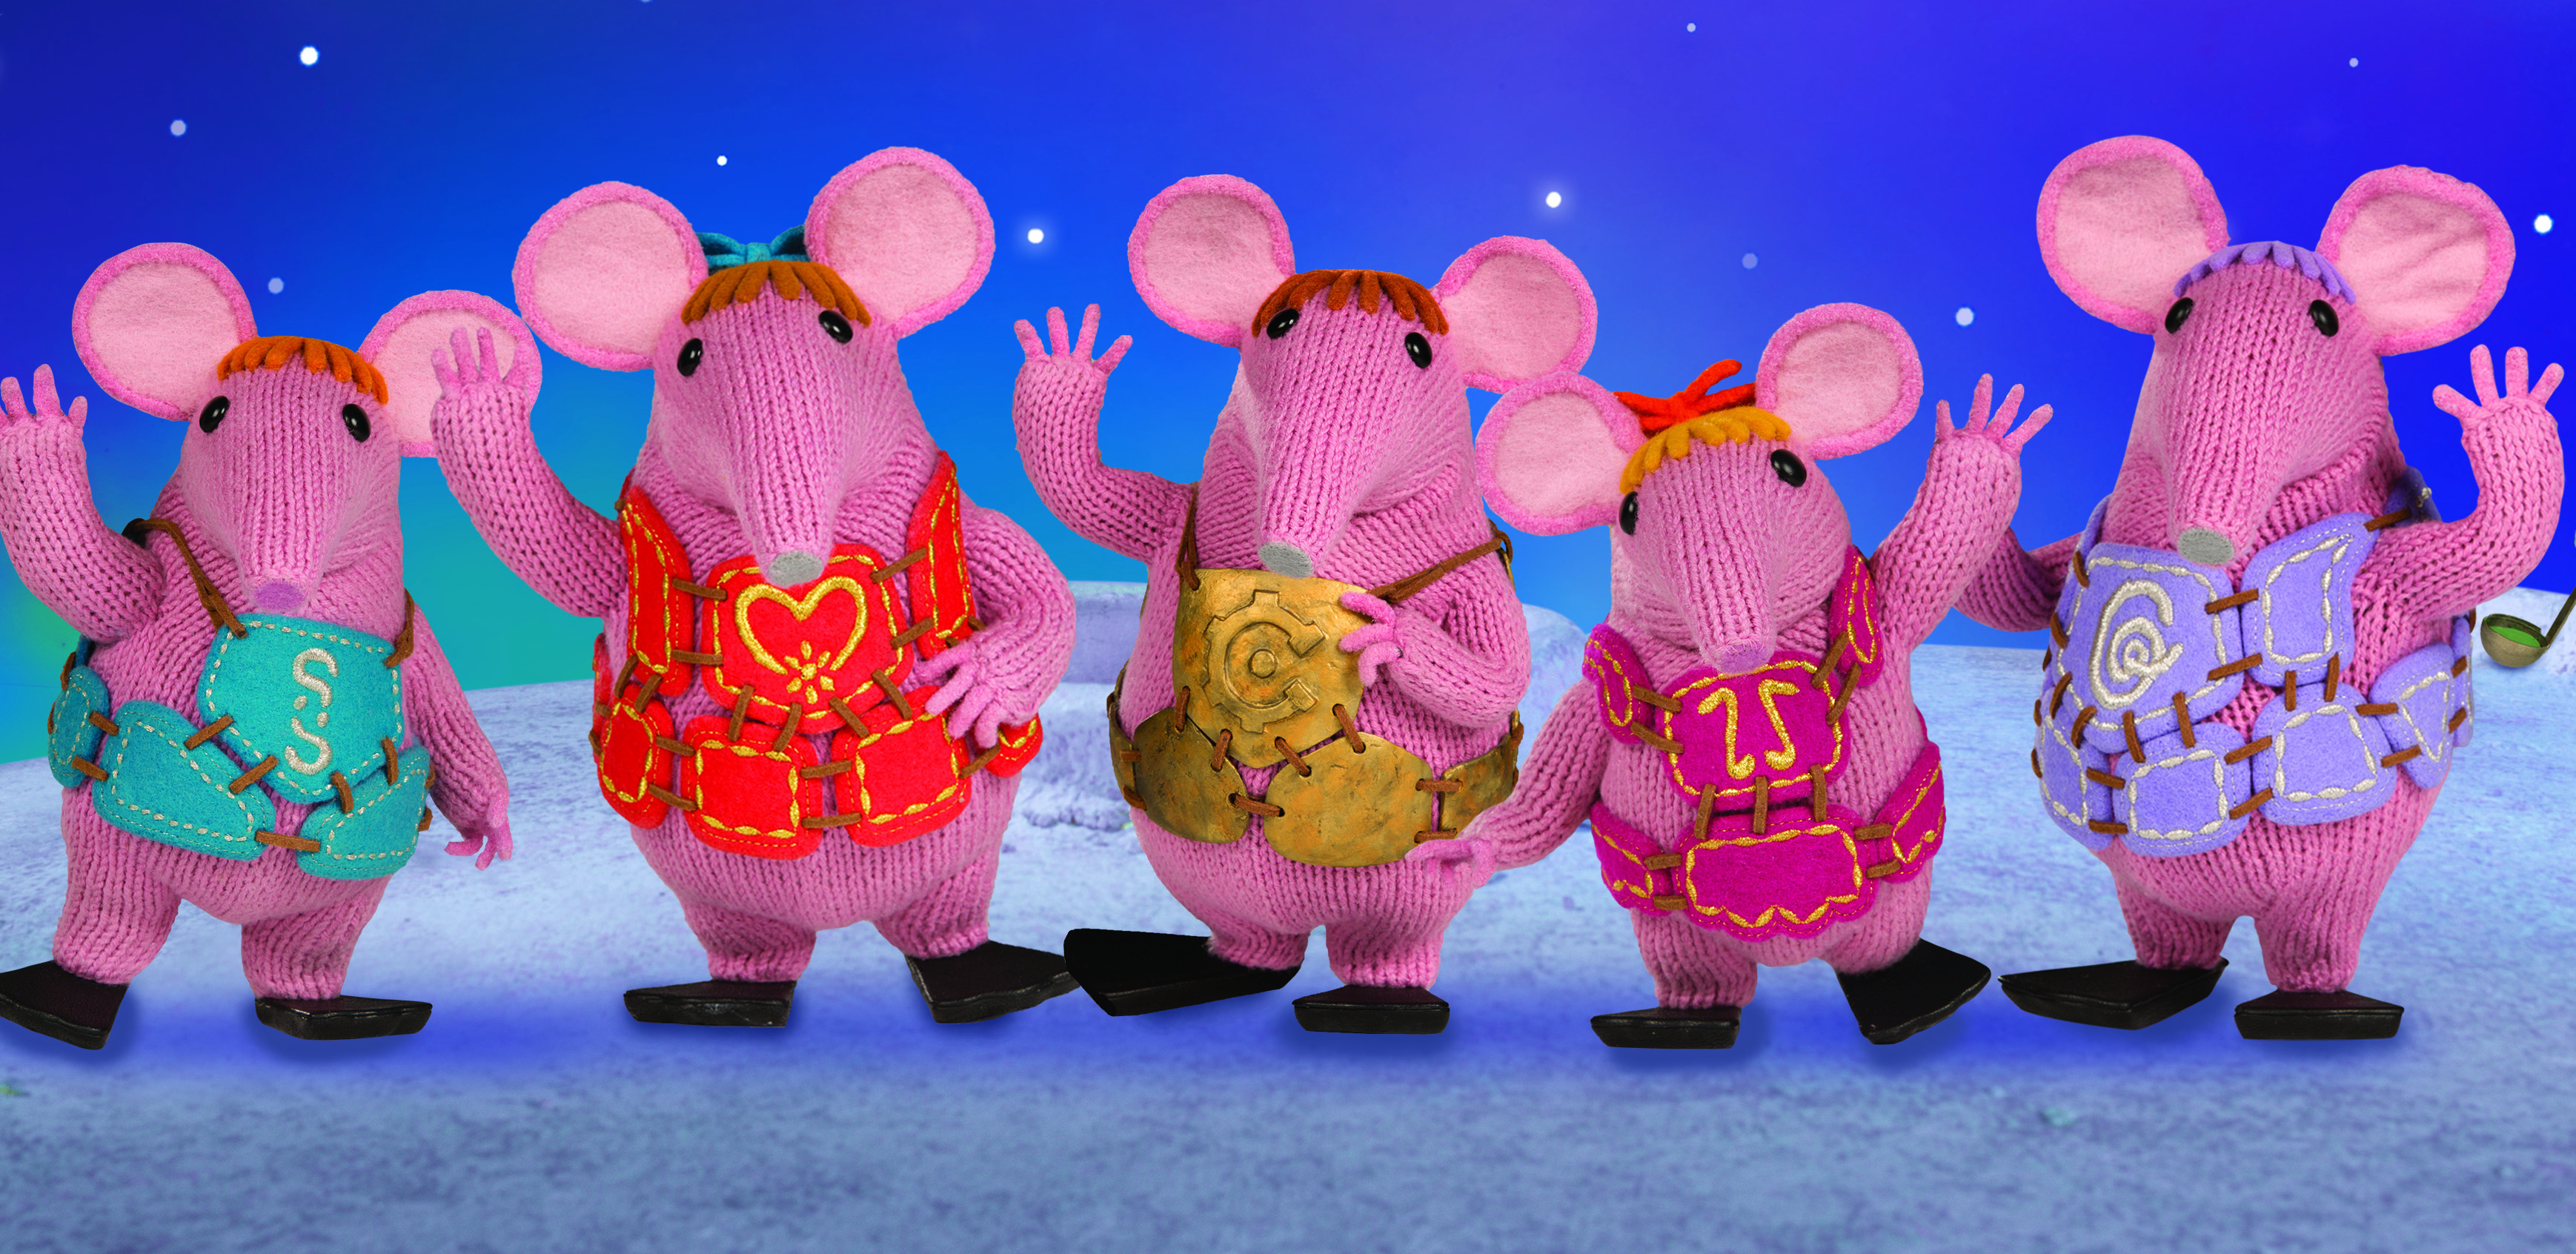 Clangers_ Image